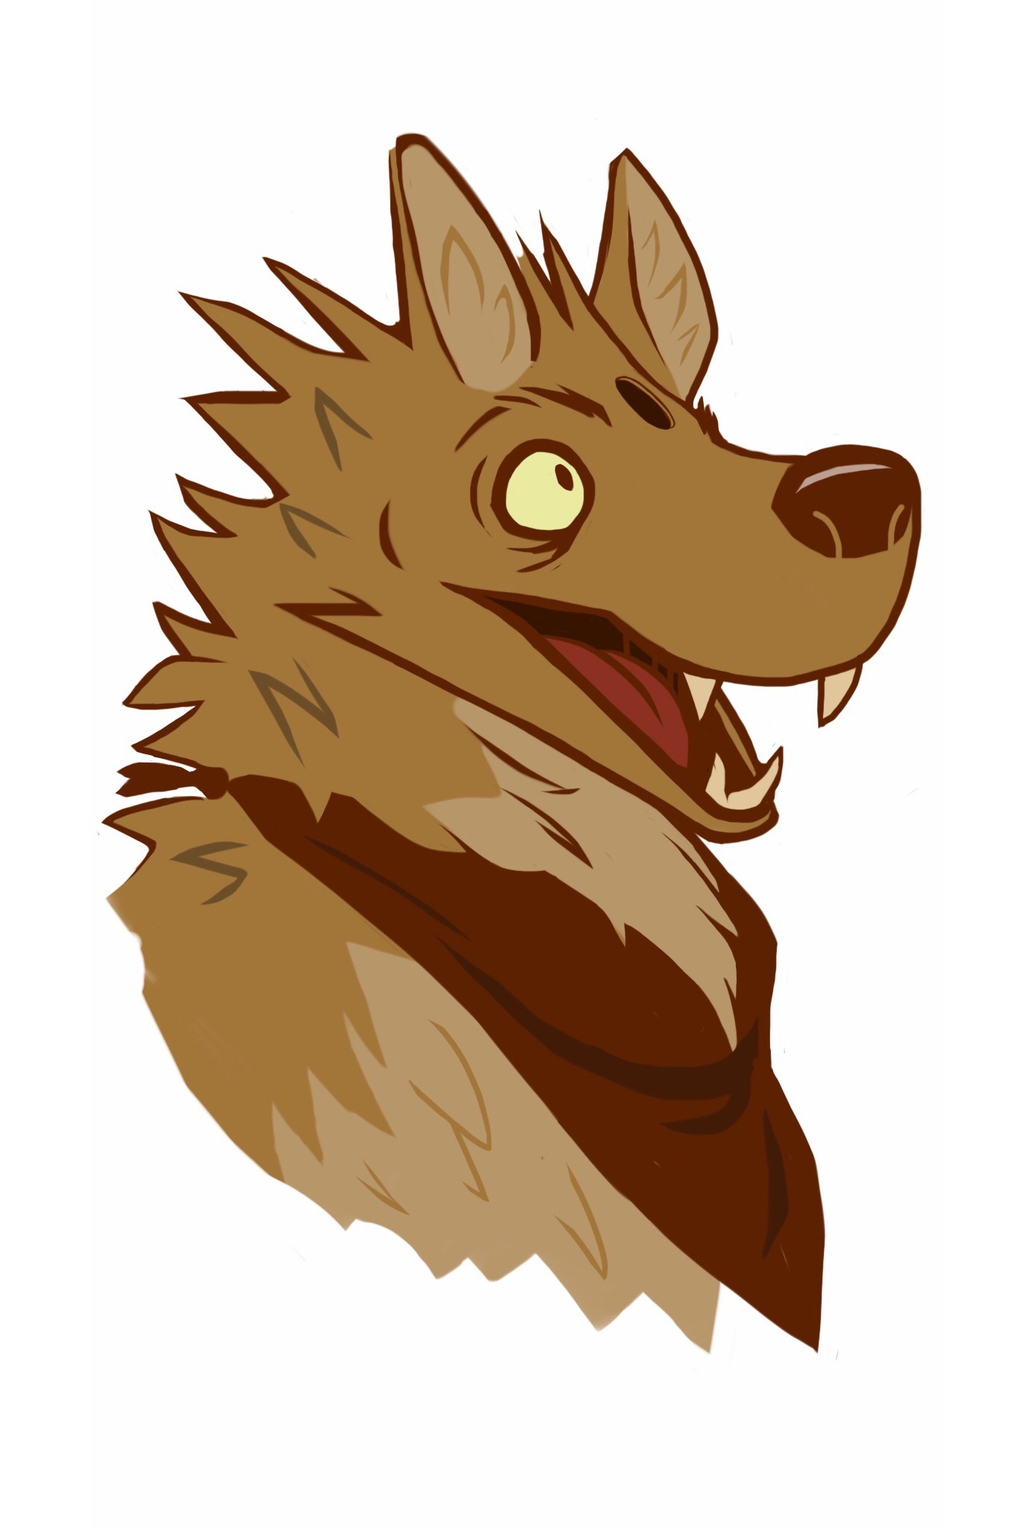 Most recent image: Wounded Wolf Redux